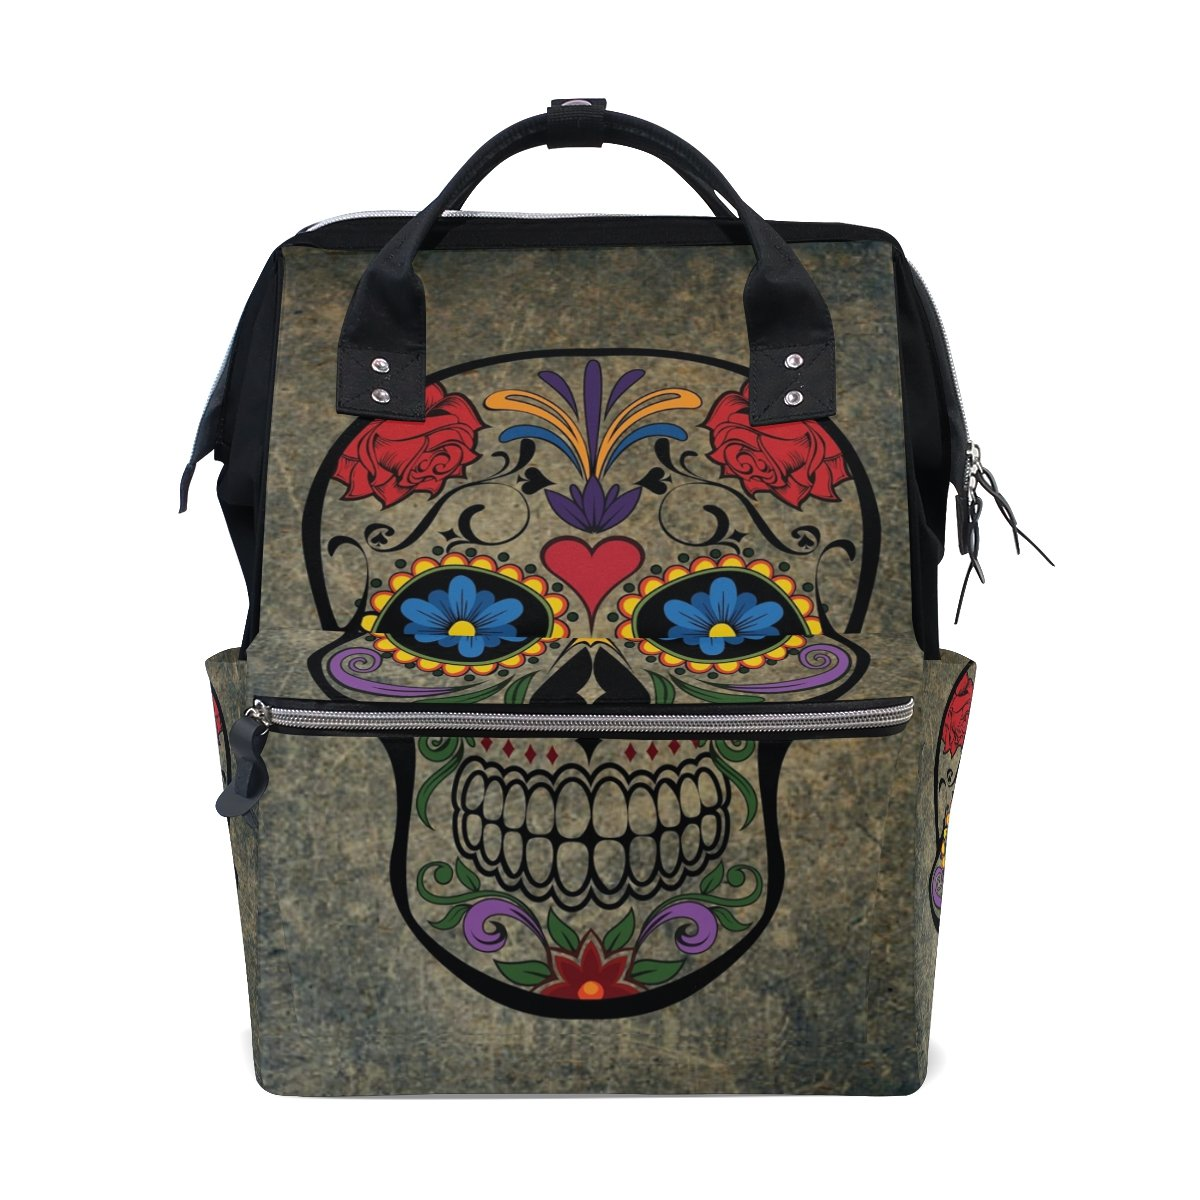 Diaper Bags Backpack Purse Mummy Backpack Fashion Mummy Maternity Nappy Bag Cool Cute Travel Backpack Laptop Backpack with Colorful Skull Head Daypack for Women Girls Kids